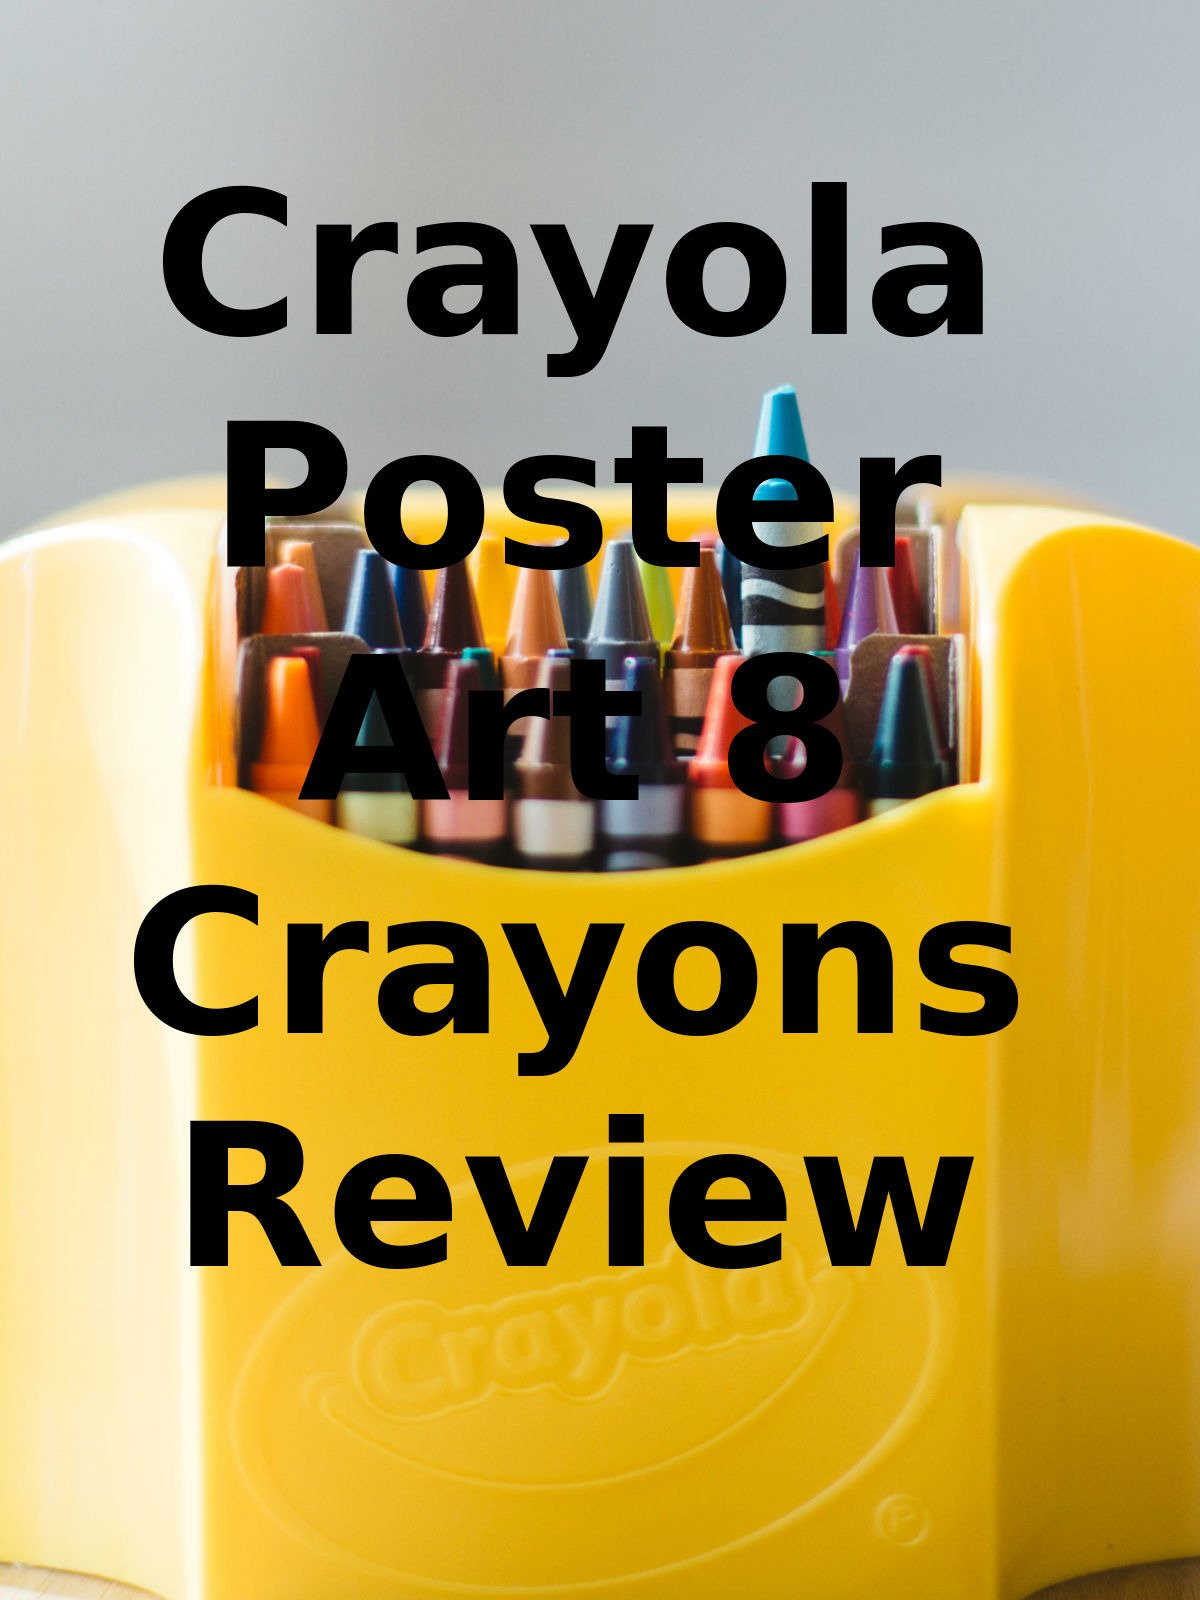 Review: Crayola Poster Art 8 Crayons Review